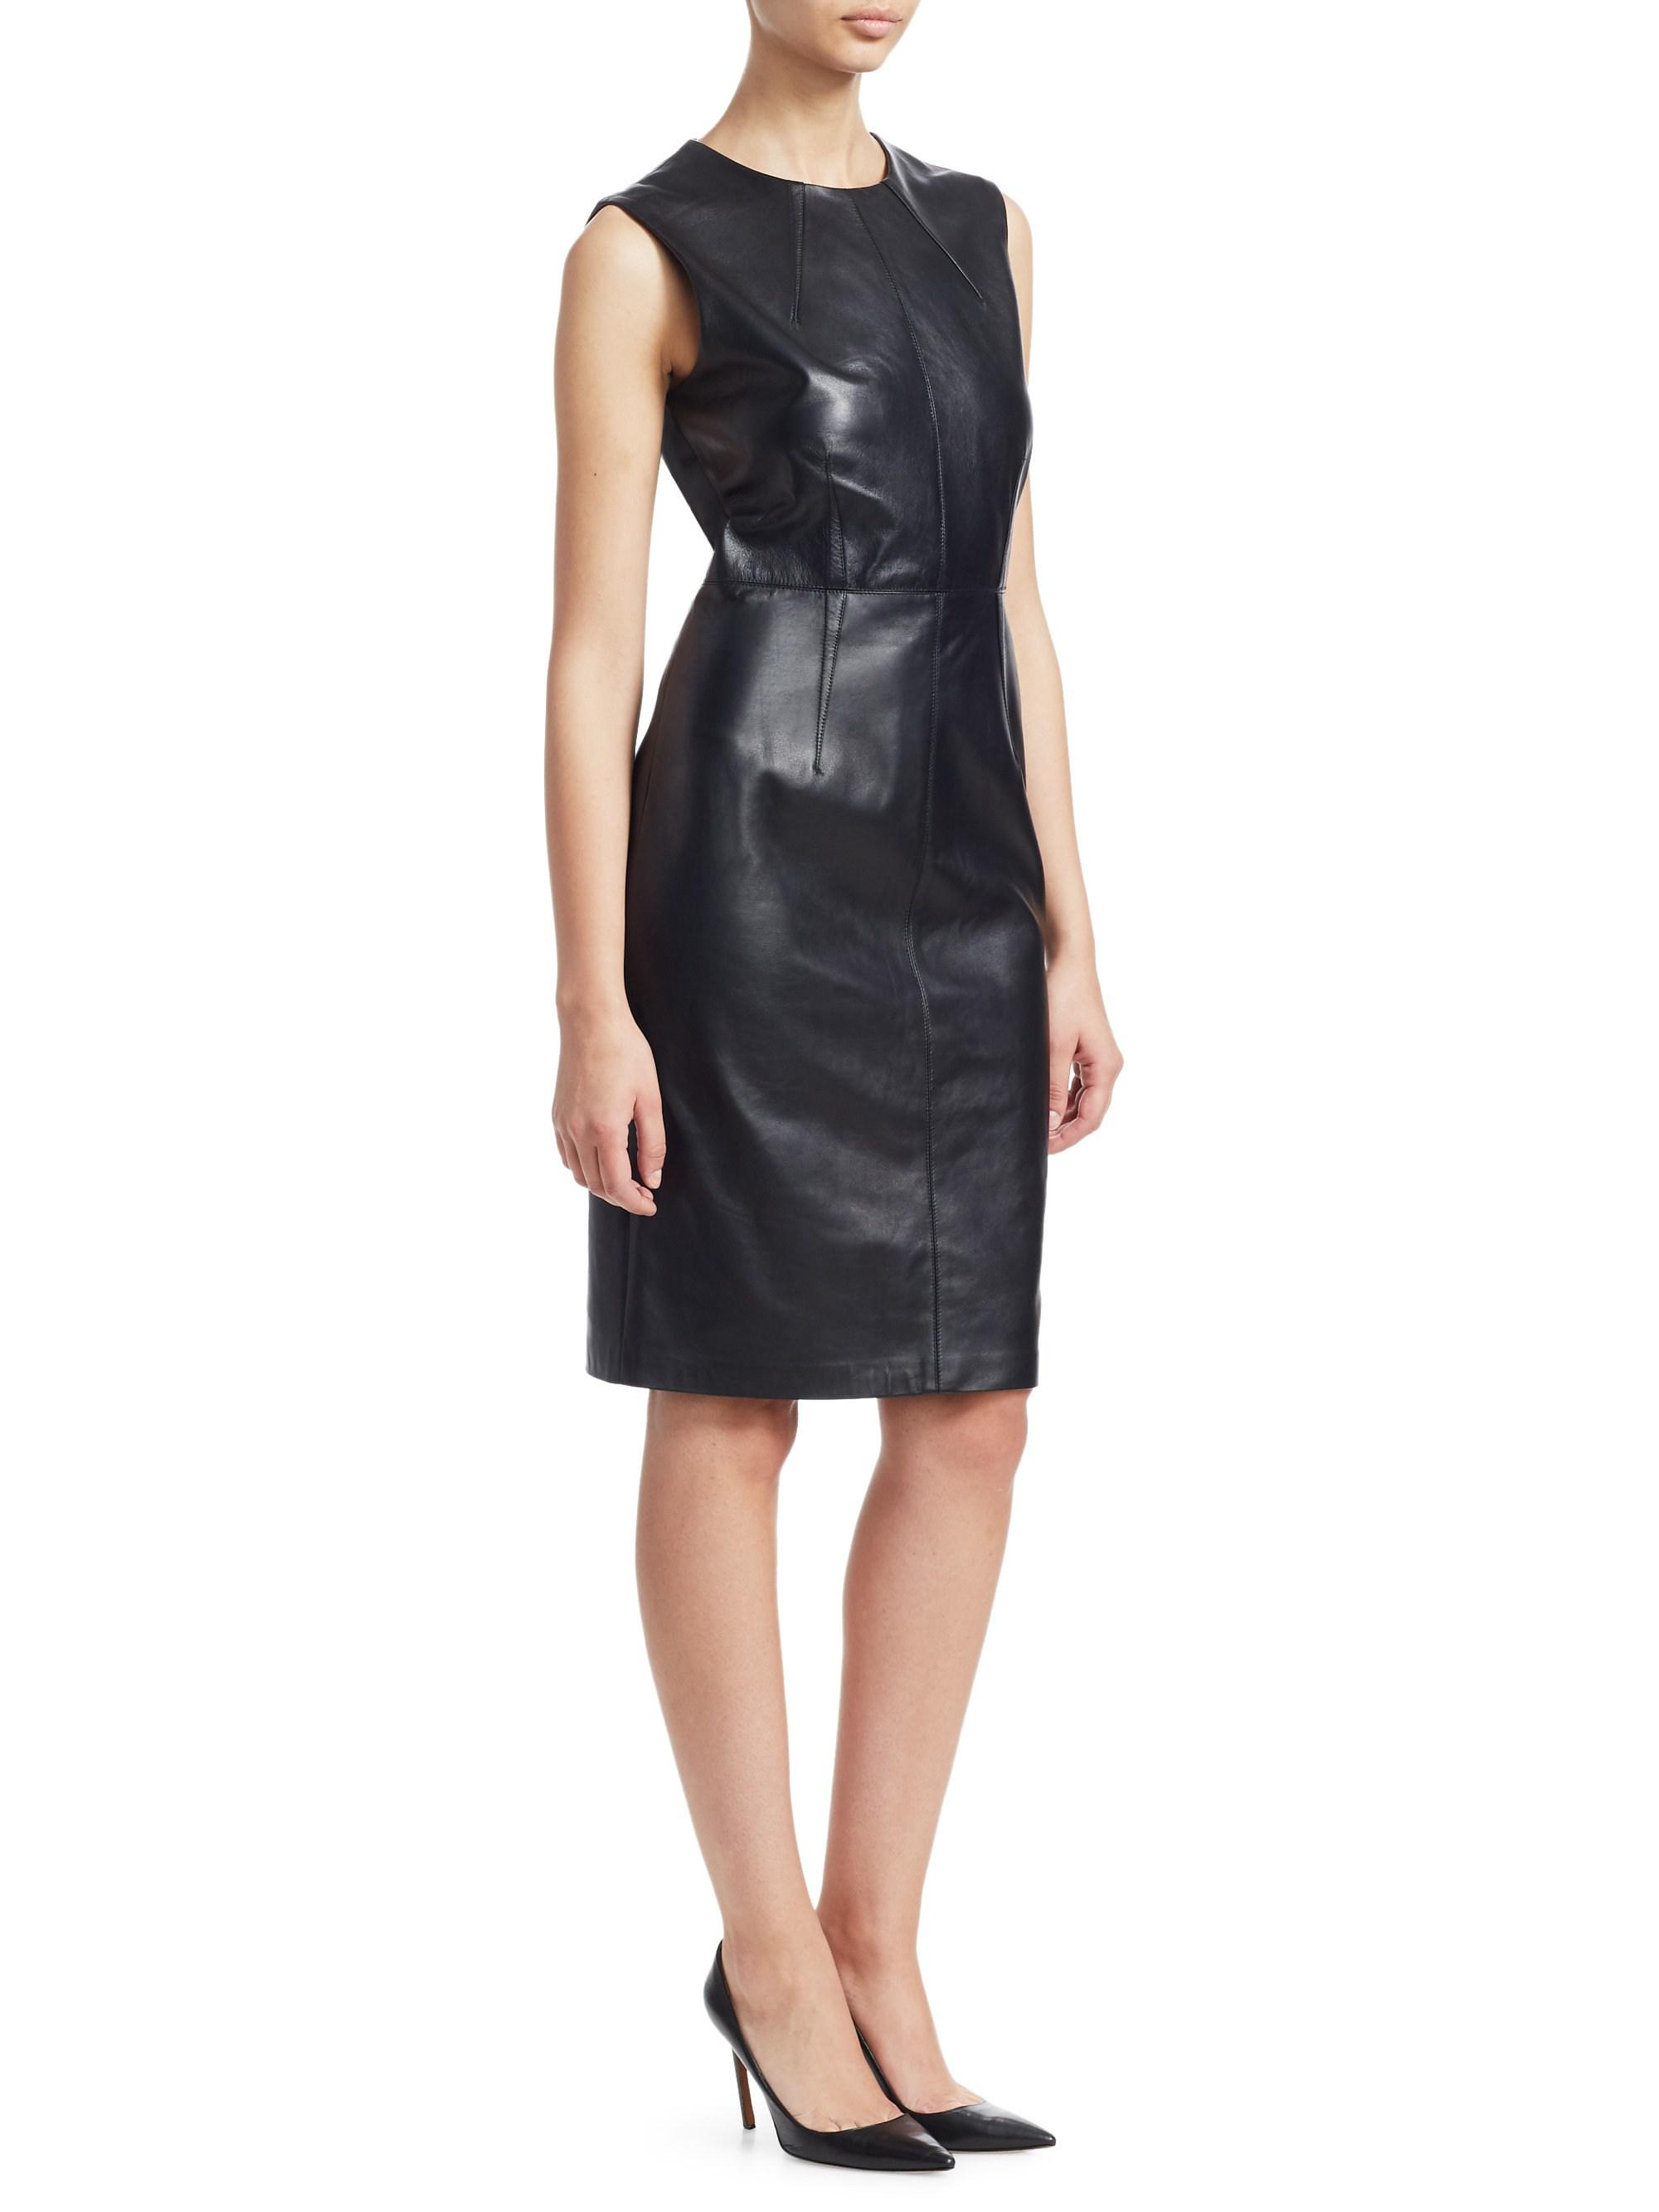 2829bbd420c Saks Fifth Avenue. Women s Collection Leather Sheath Dress - Black - Size  Medium